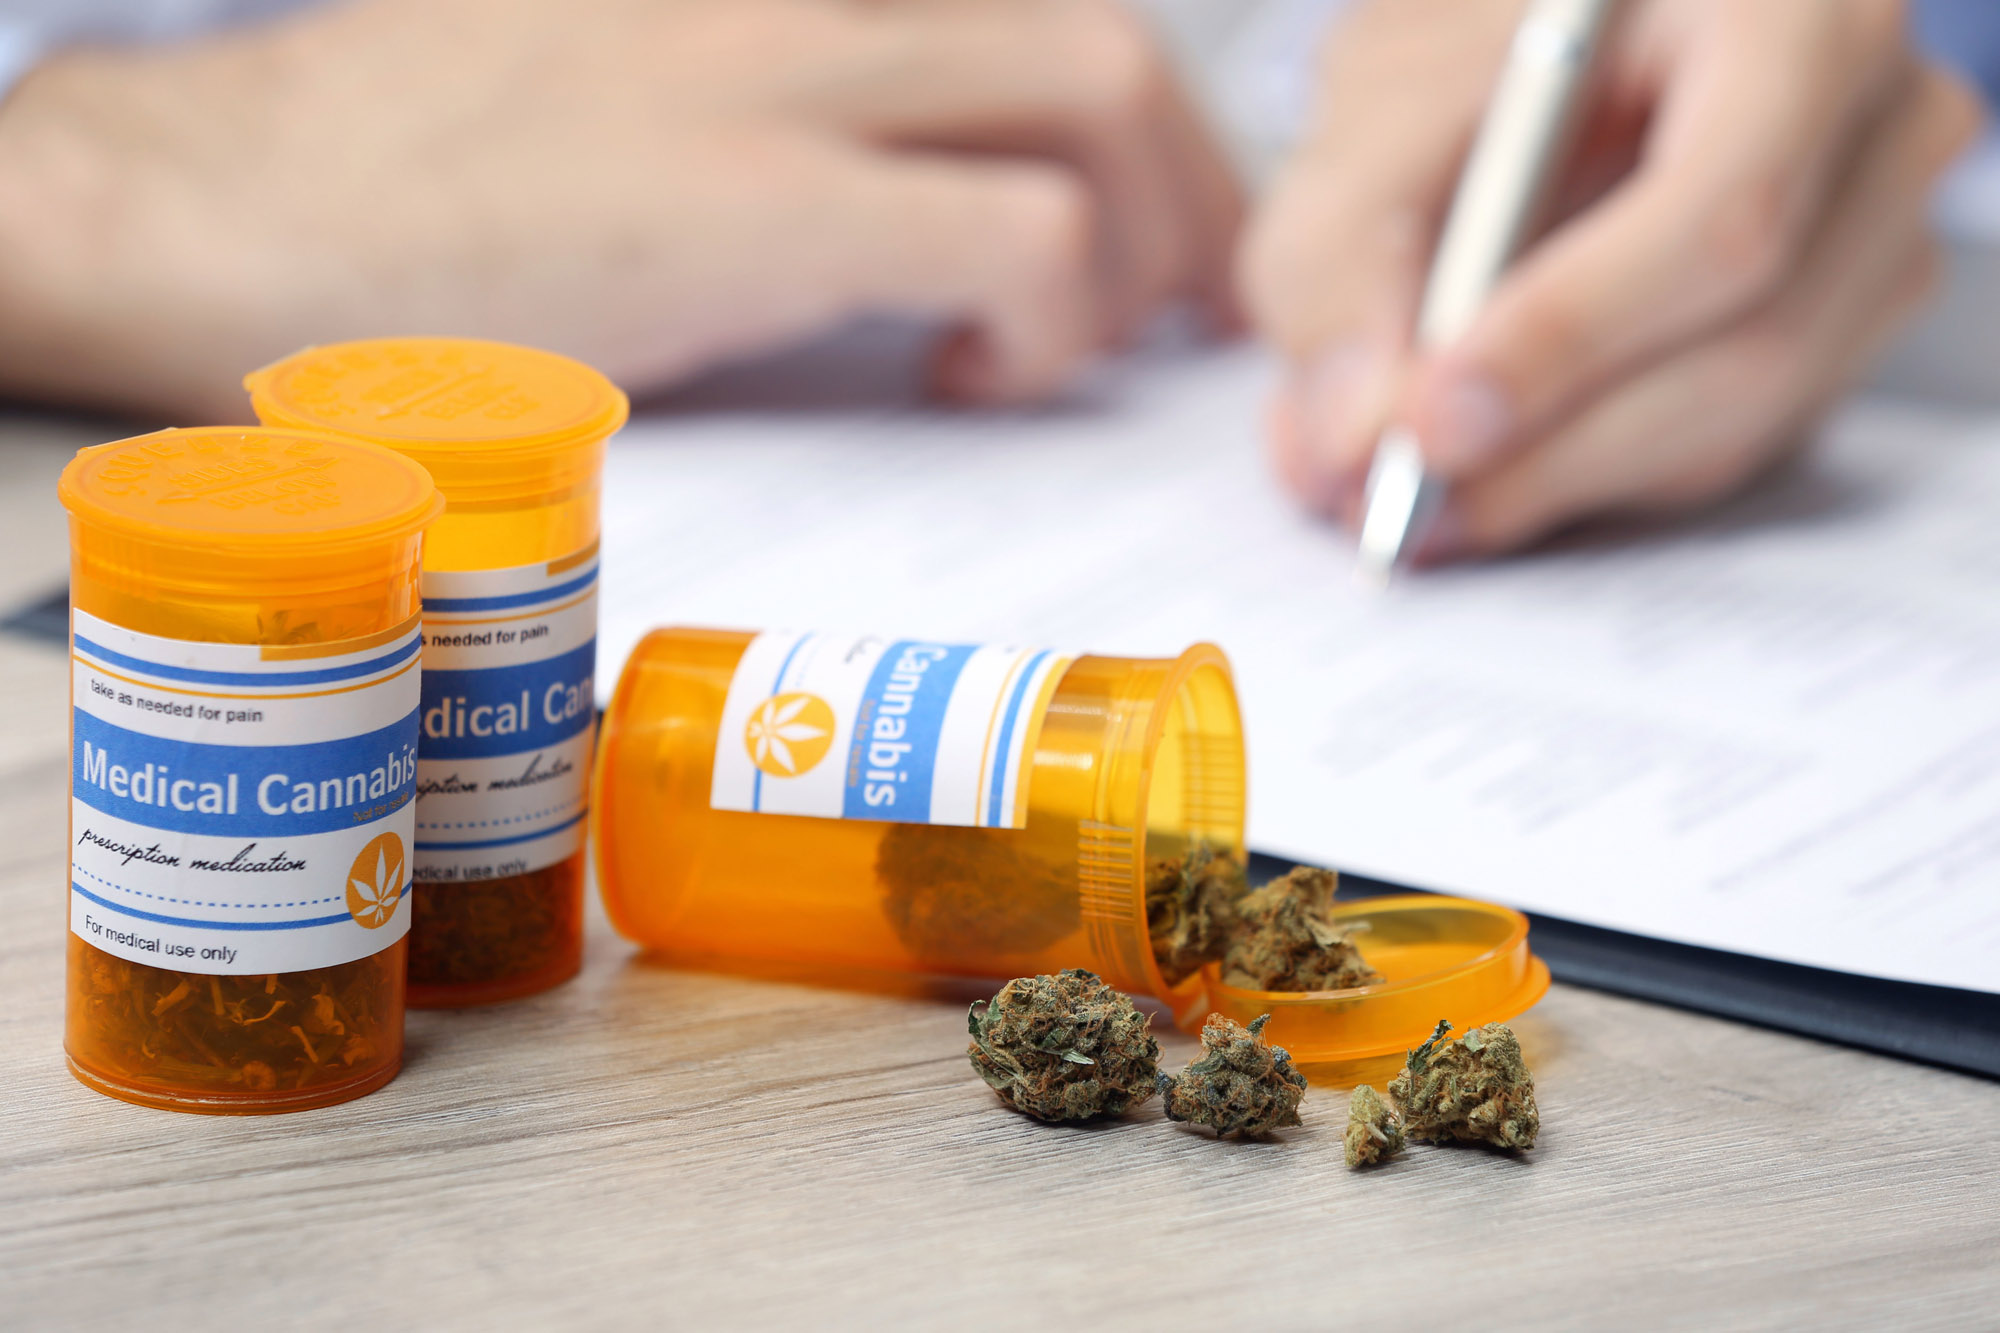 A Medical Cannabis Doctor Can Help Manage Your Medical Condition